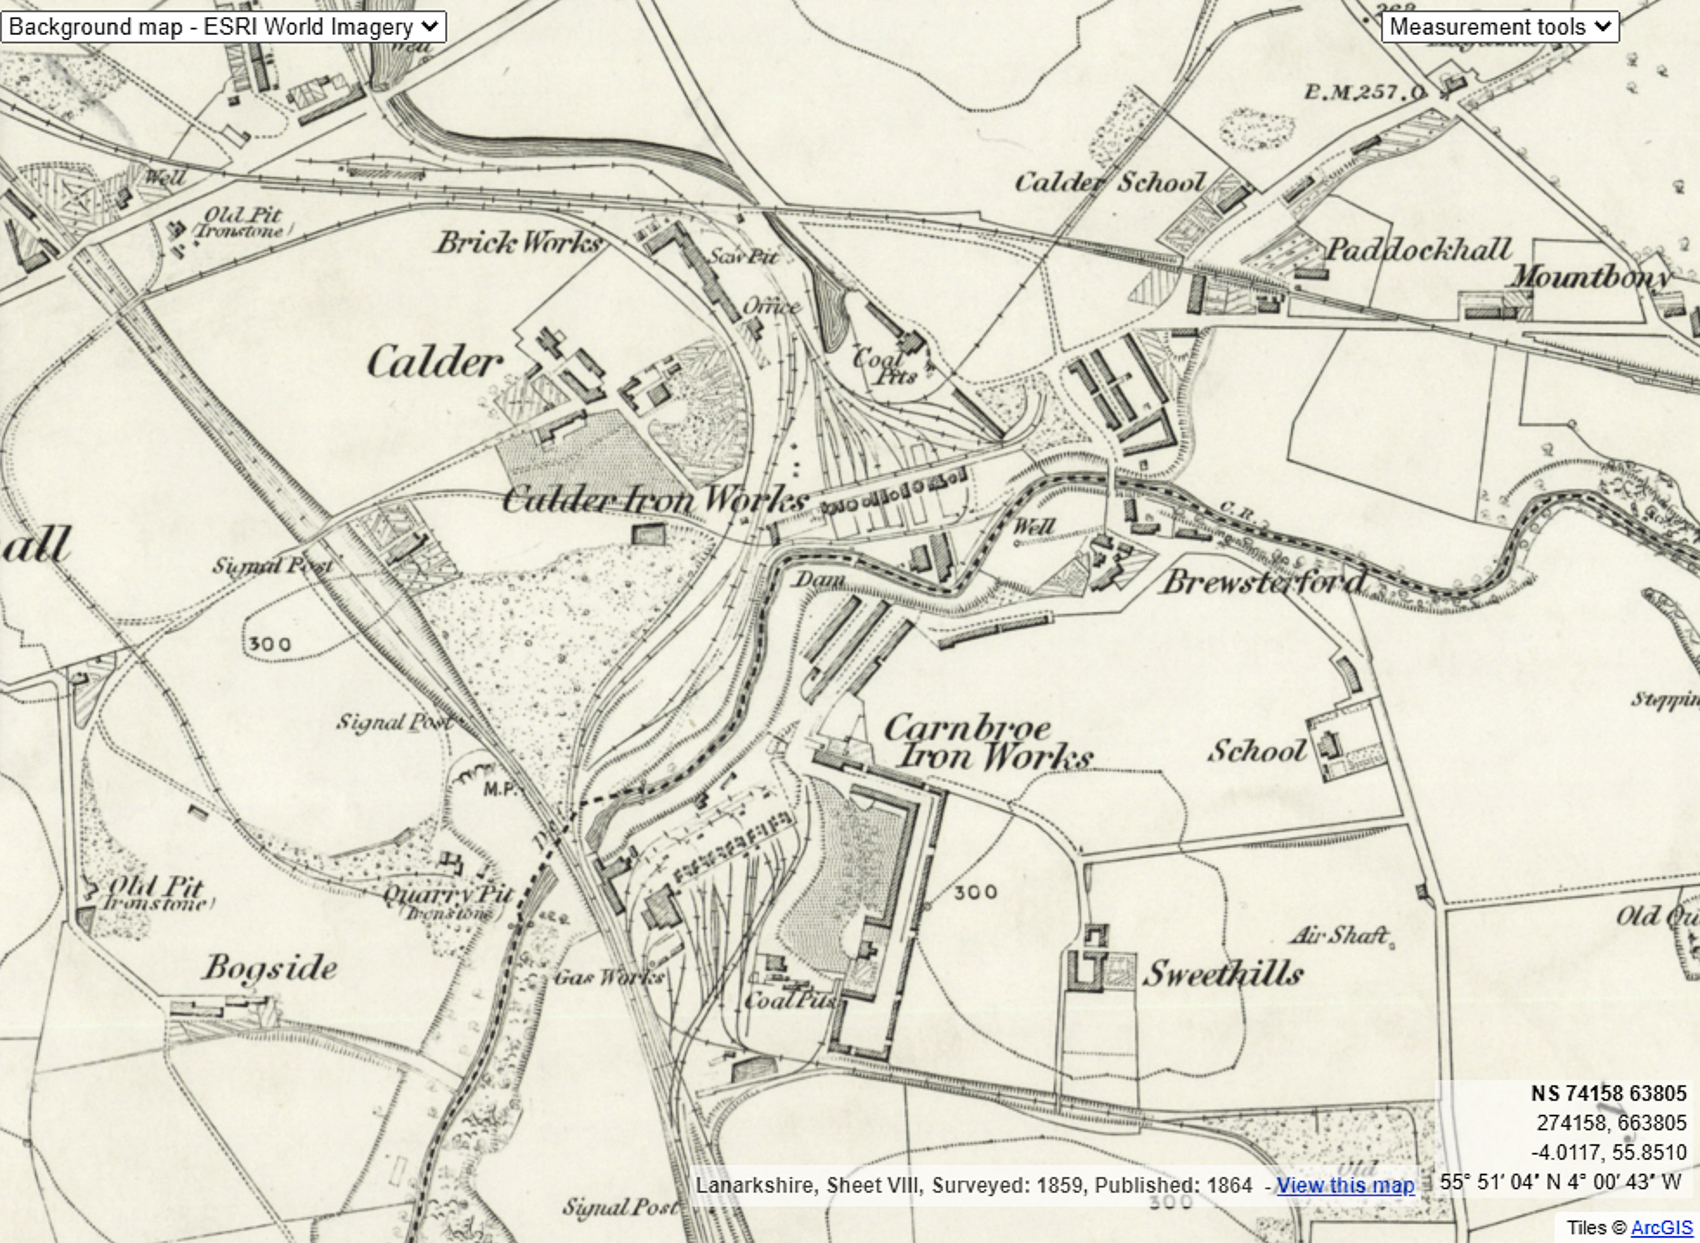 The Calder Iron Works from the 1st OS map, 1859. The works was built on the Calder Estate and you can see Calder House with its gardens just to the north-west. The small gatehouse at centre-far left still stands as a private house.